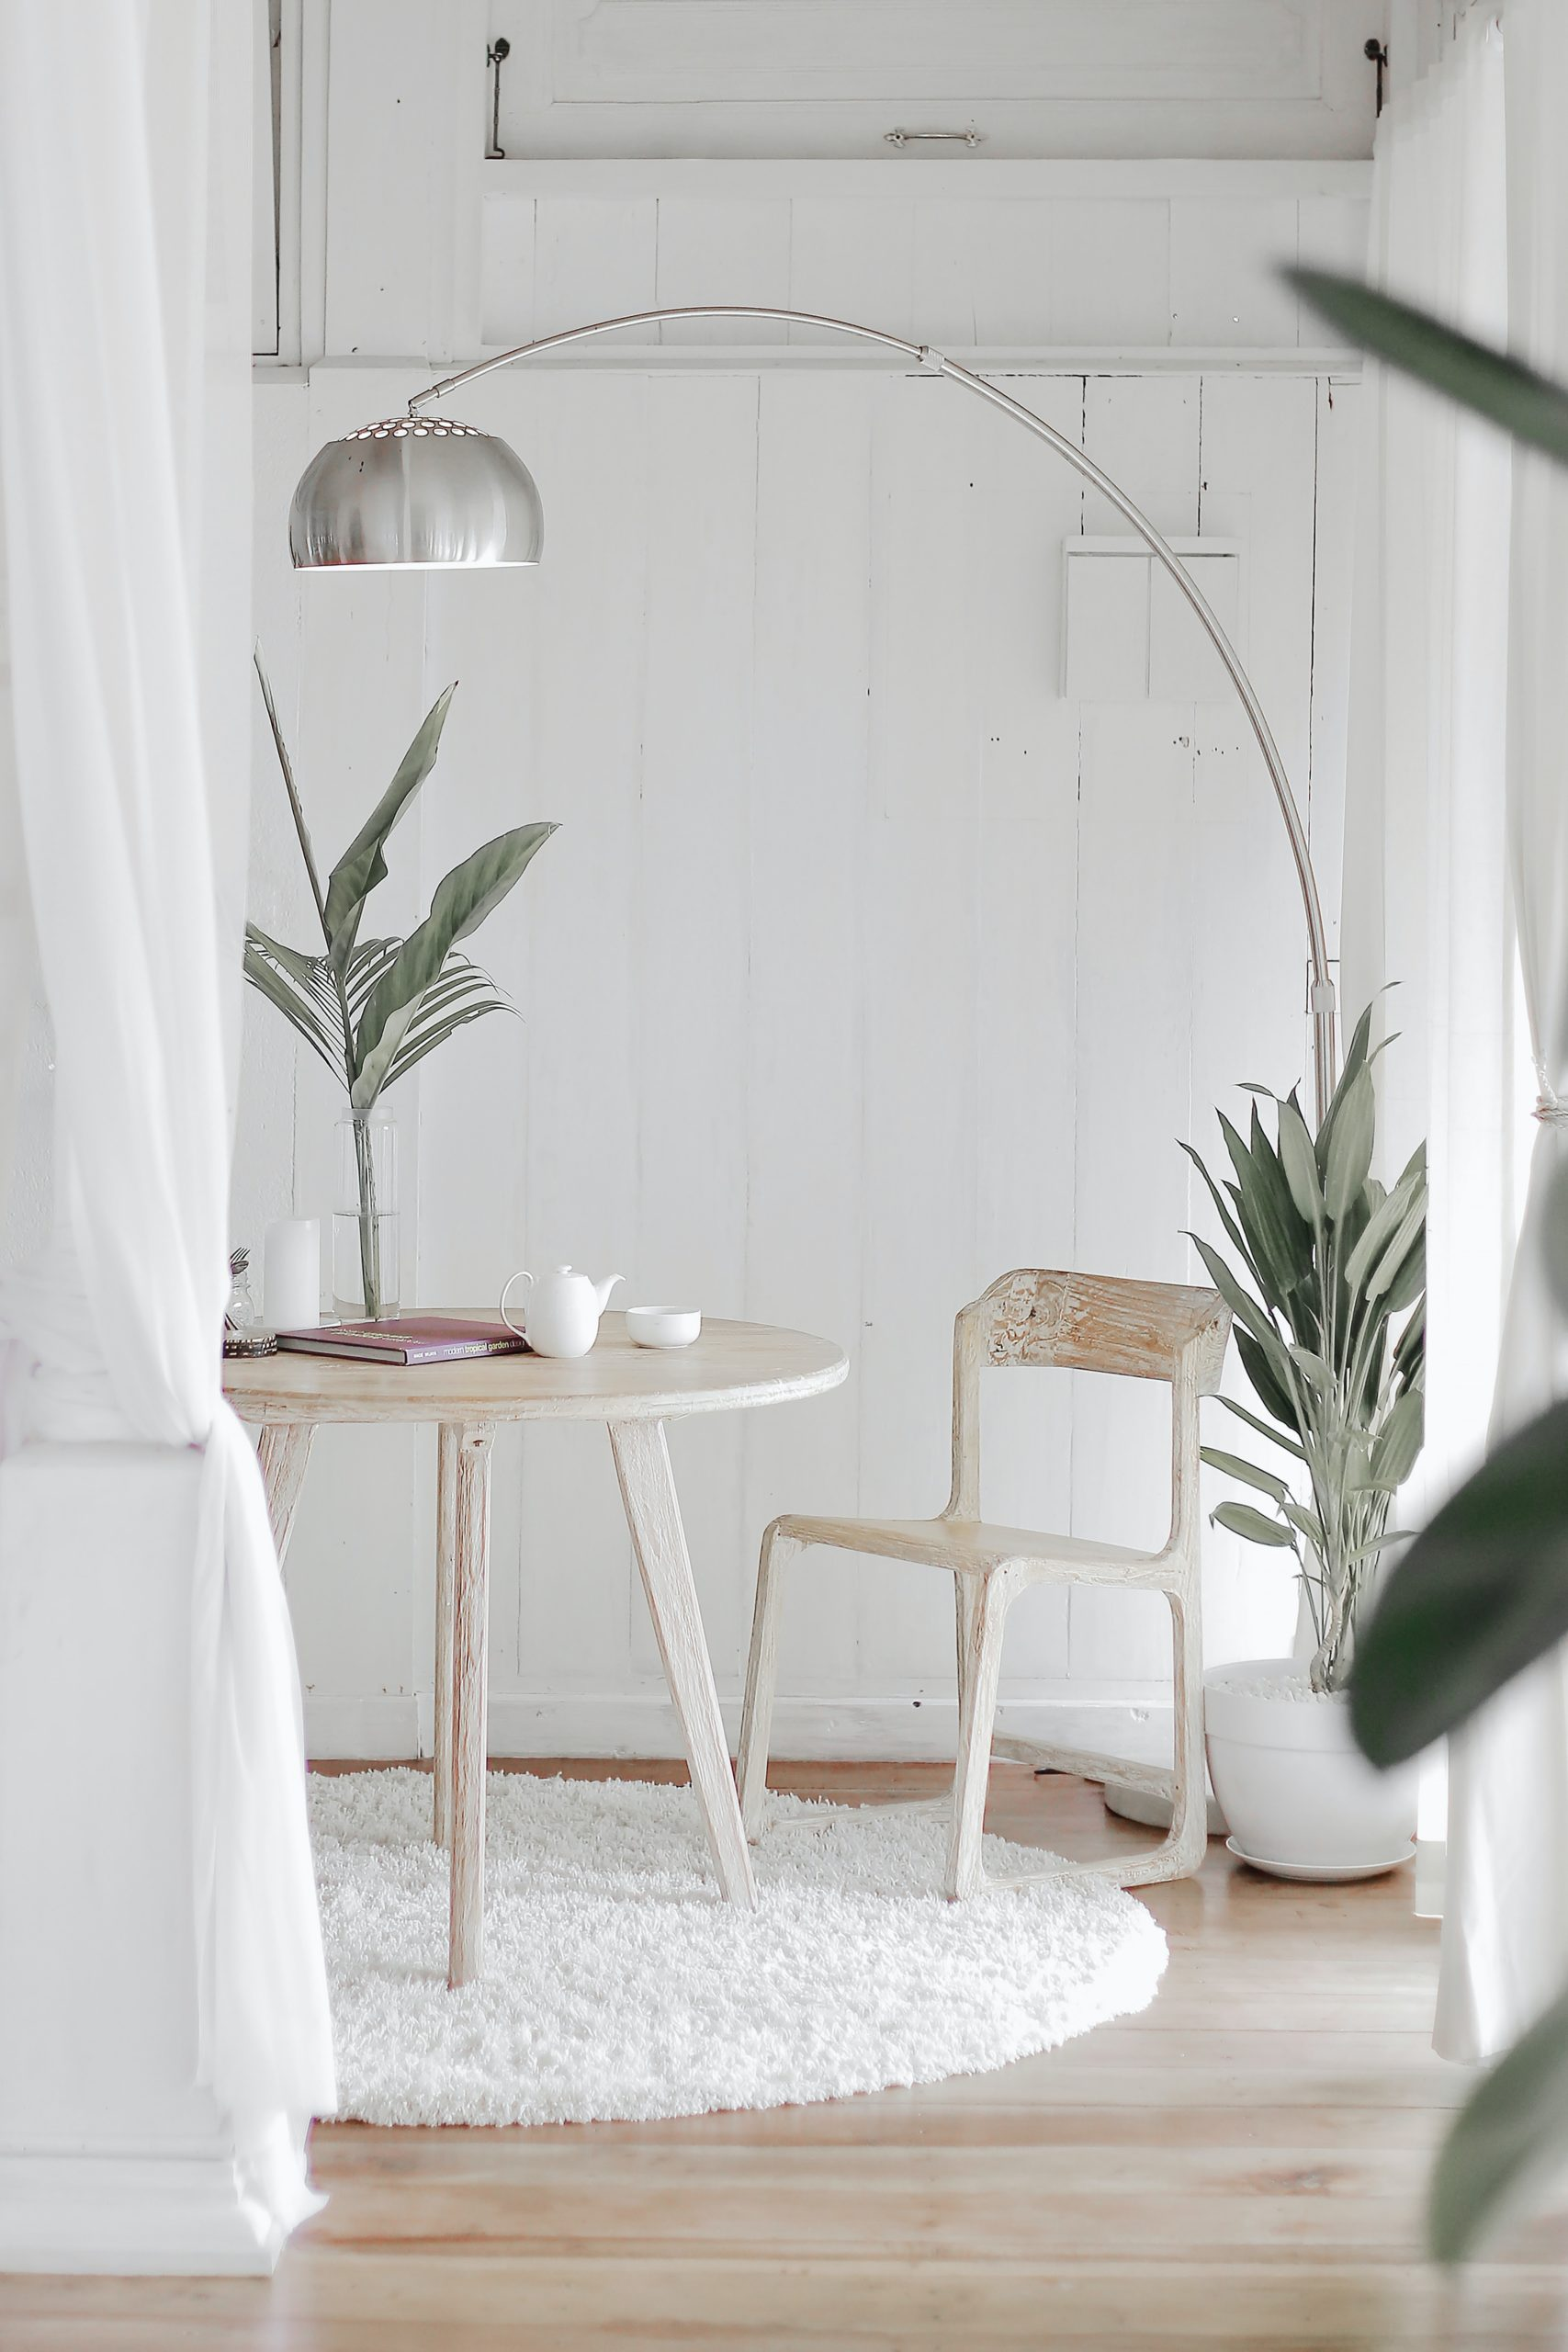 blue color code personality likes a clean white room with a table, light fixture, and plant